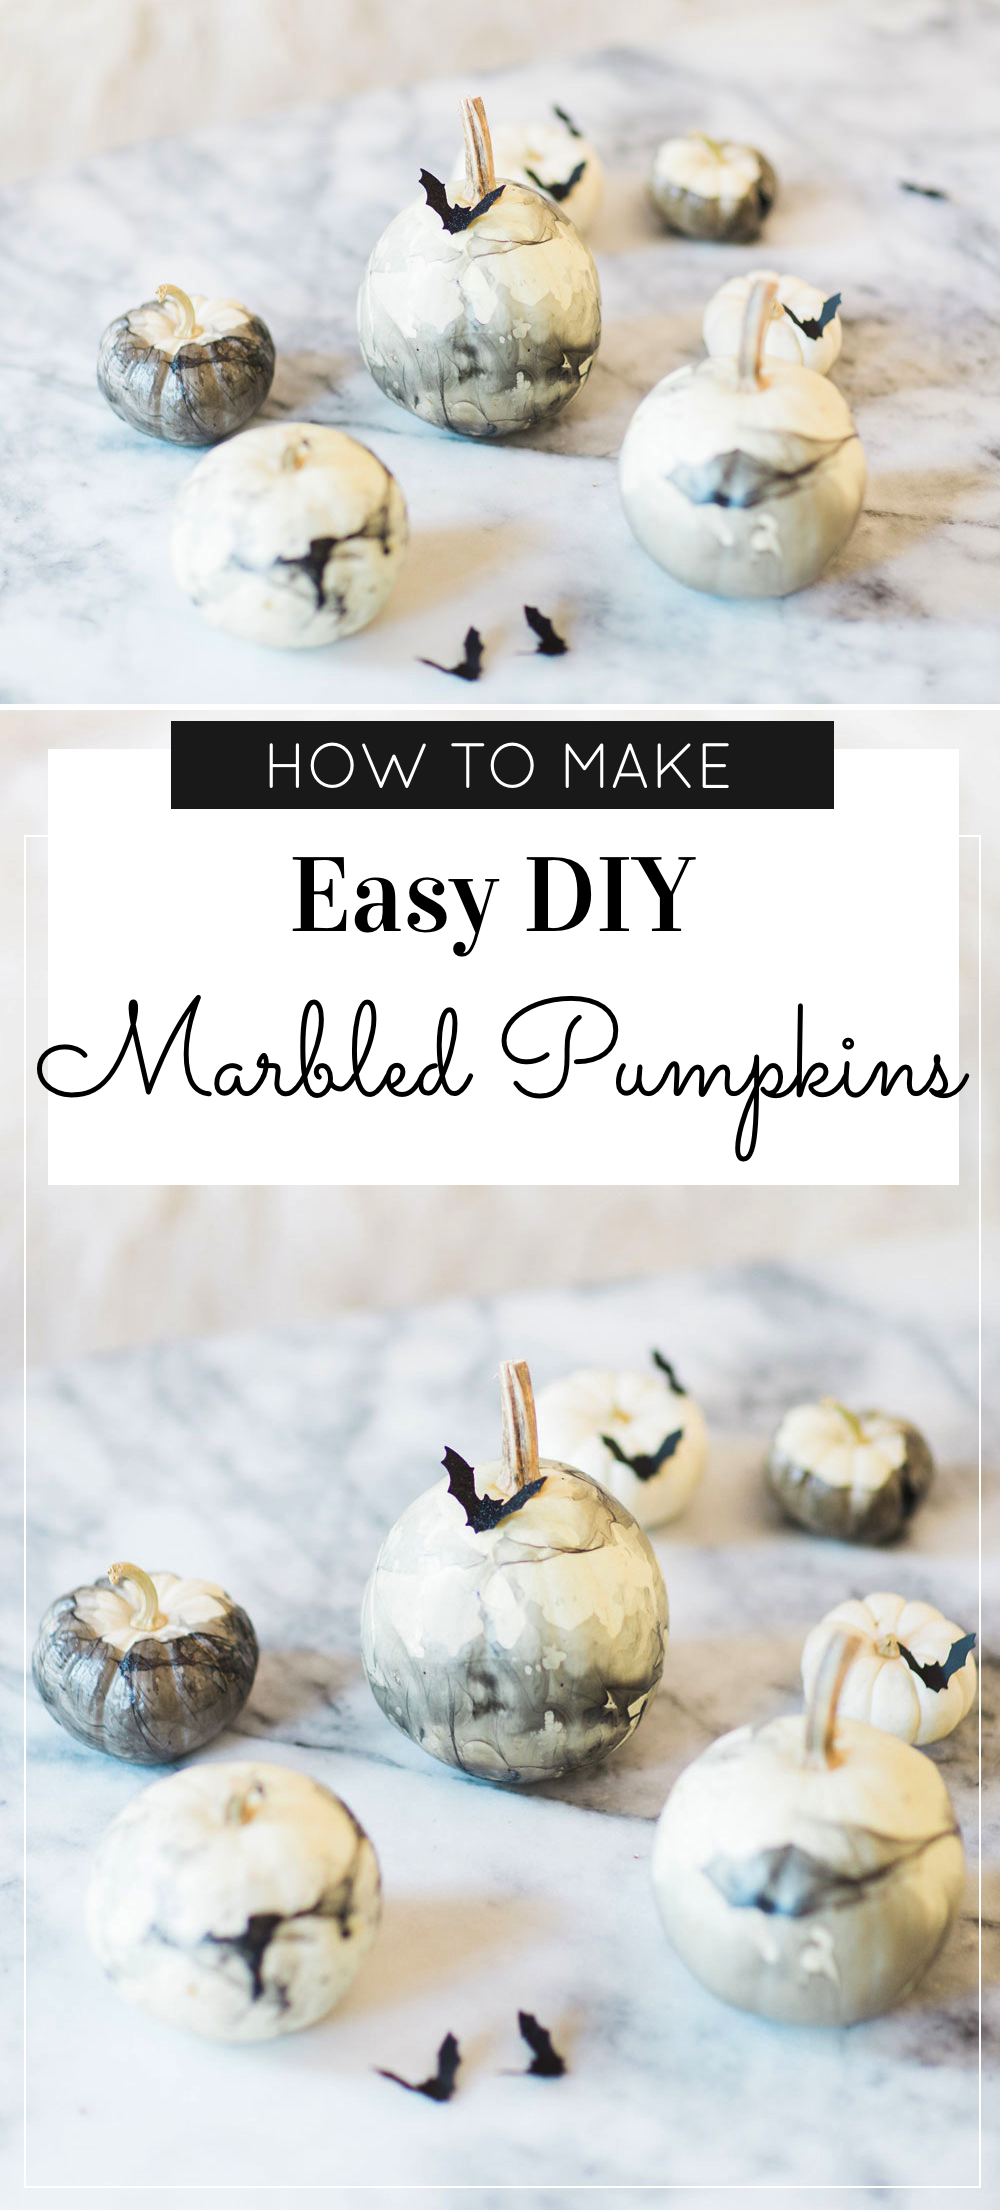 How to make chic and easy DIY marbled pumpkins (perfect for Halloween!) Click through for the details. | glitterinc.com | @glitterinc